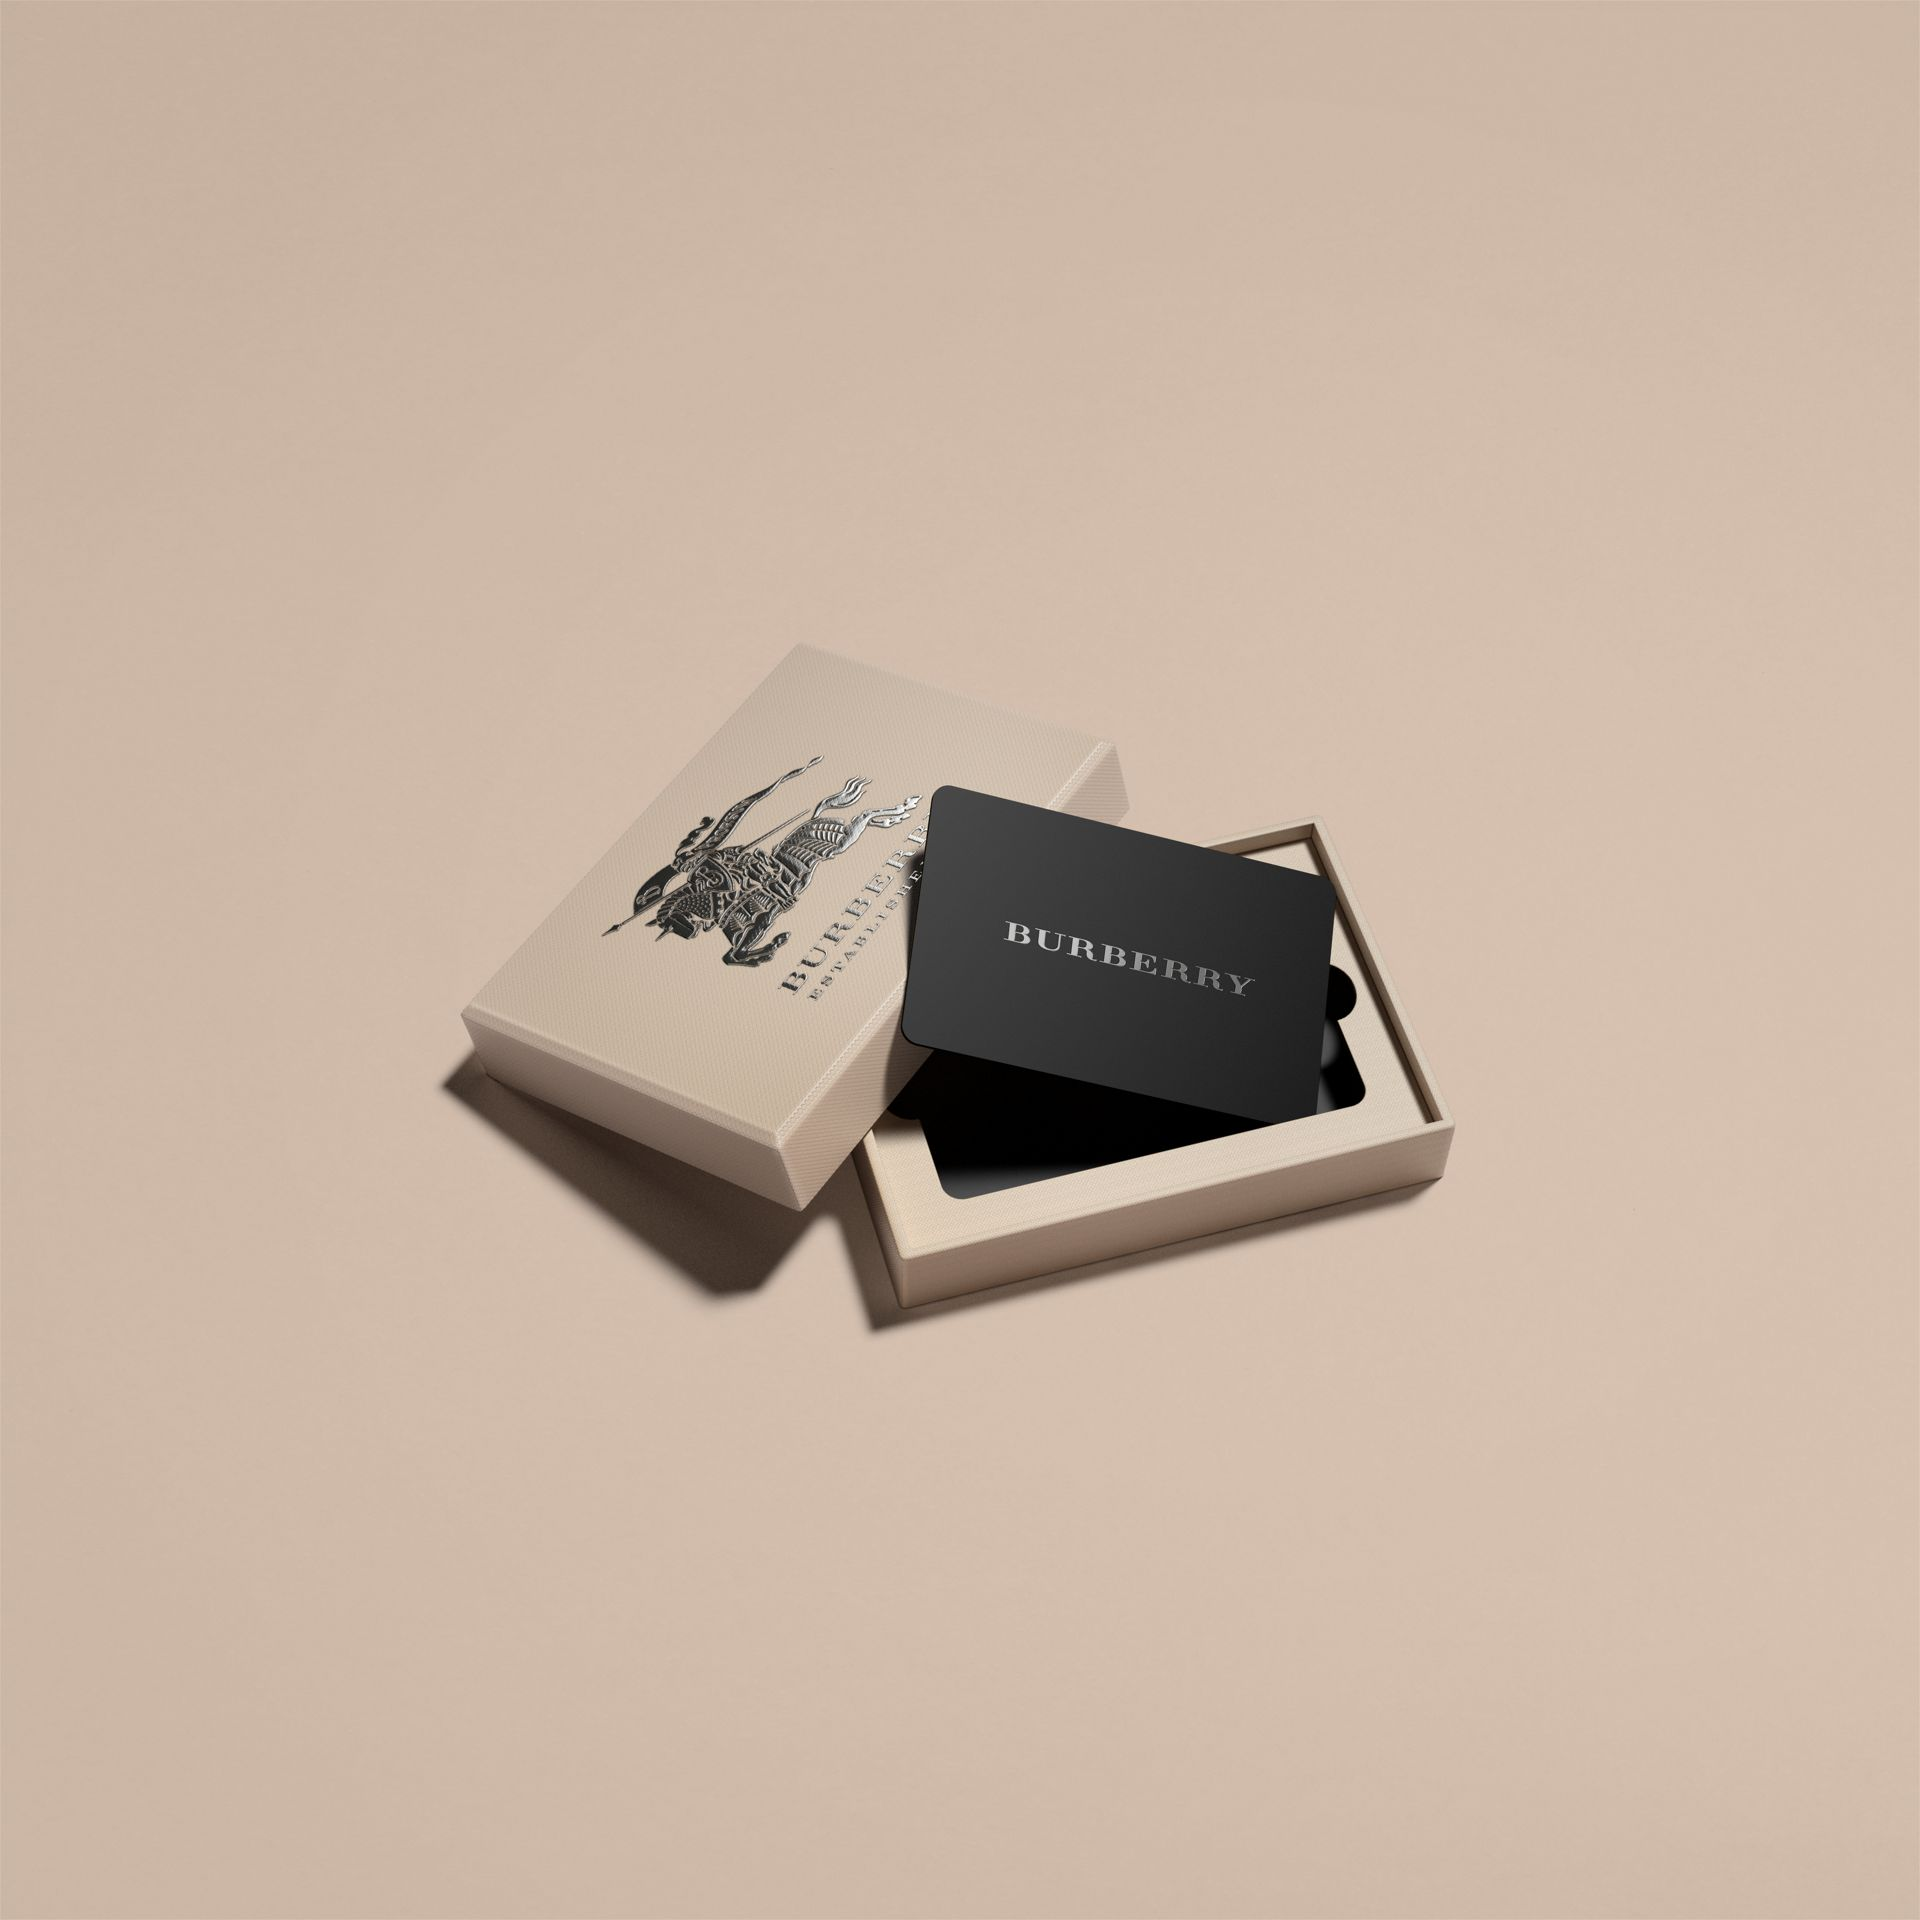 Burberry Gift Card | Burberry - gallery image 1